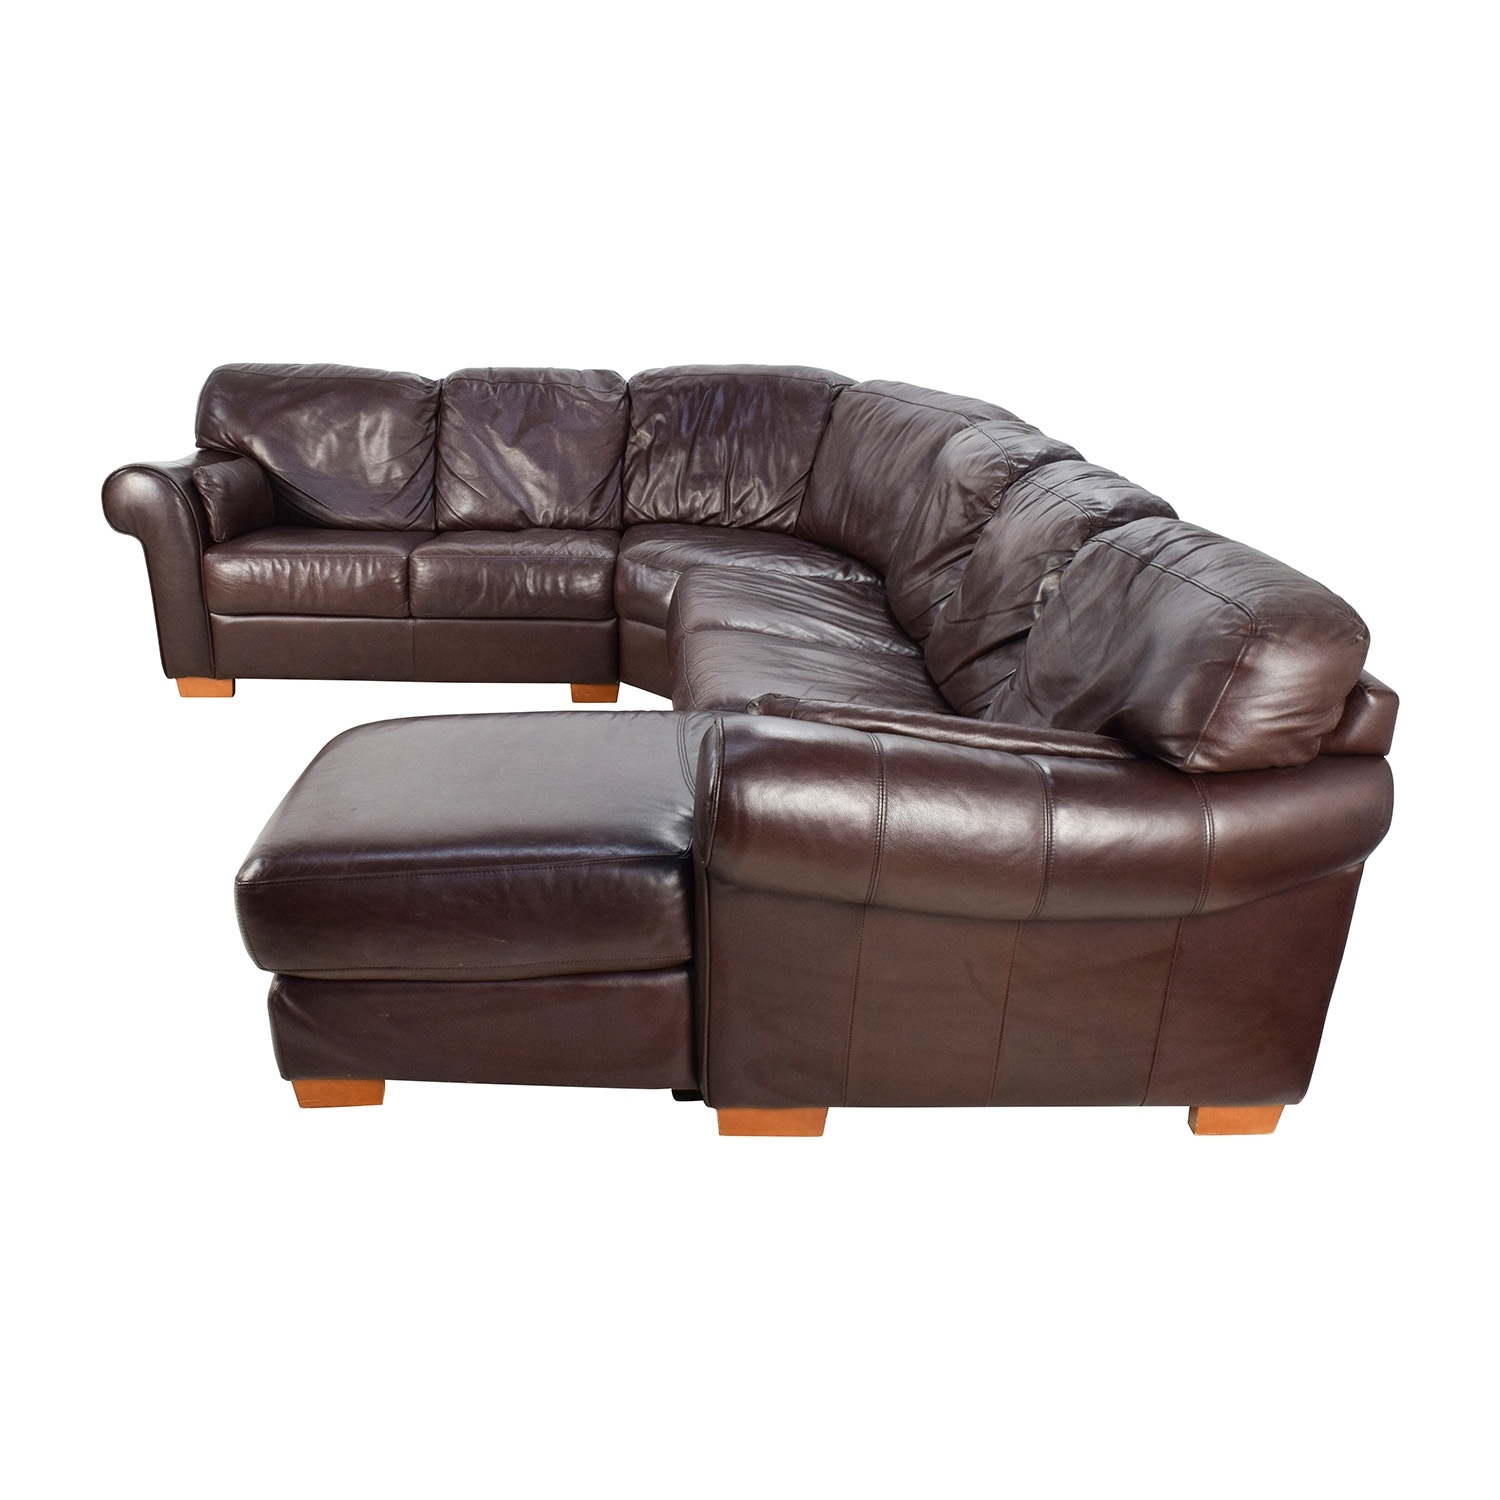 63% Off – Raymour & Flanigan Raymour & Flanigan 4 Piece Leather With Regard To Raymour And Flanigan Sectional Sofas (Gallery 8 of 10)